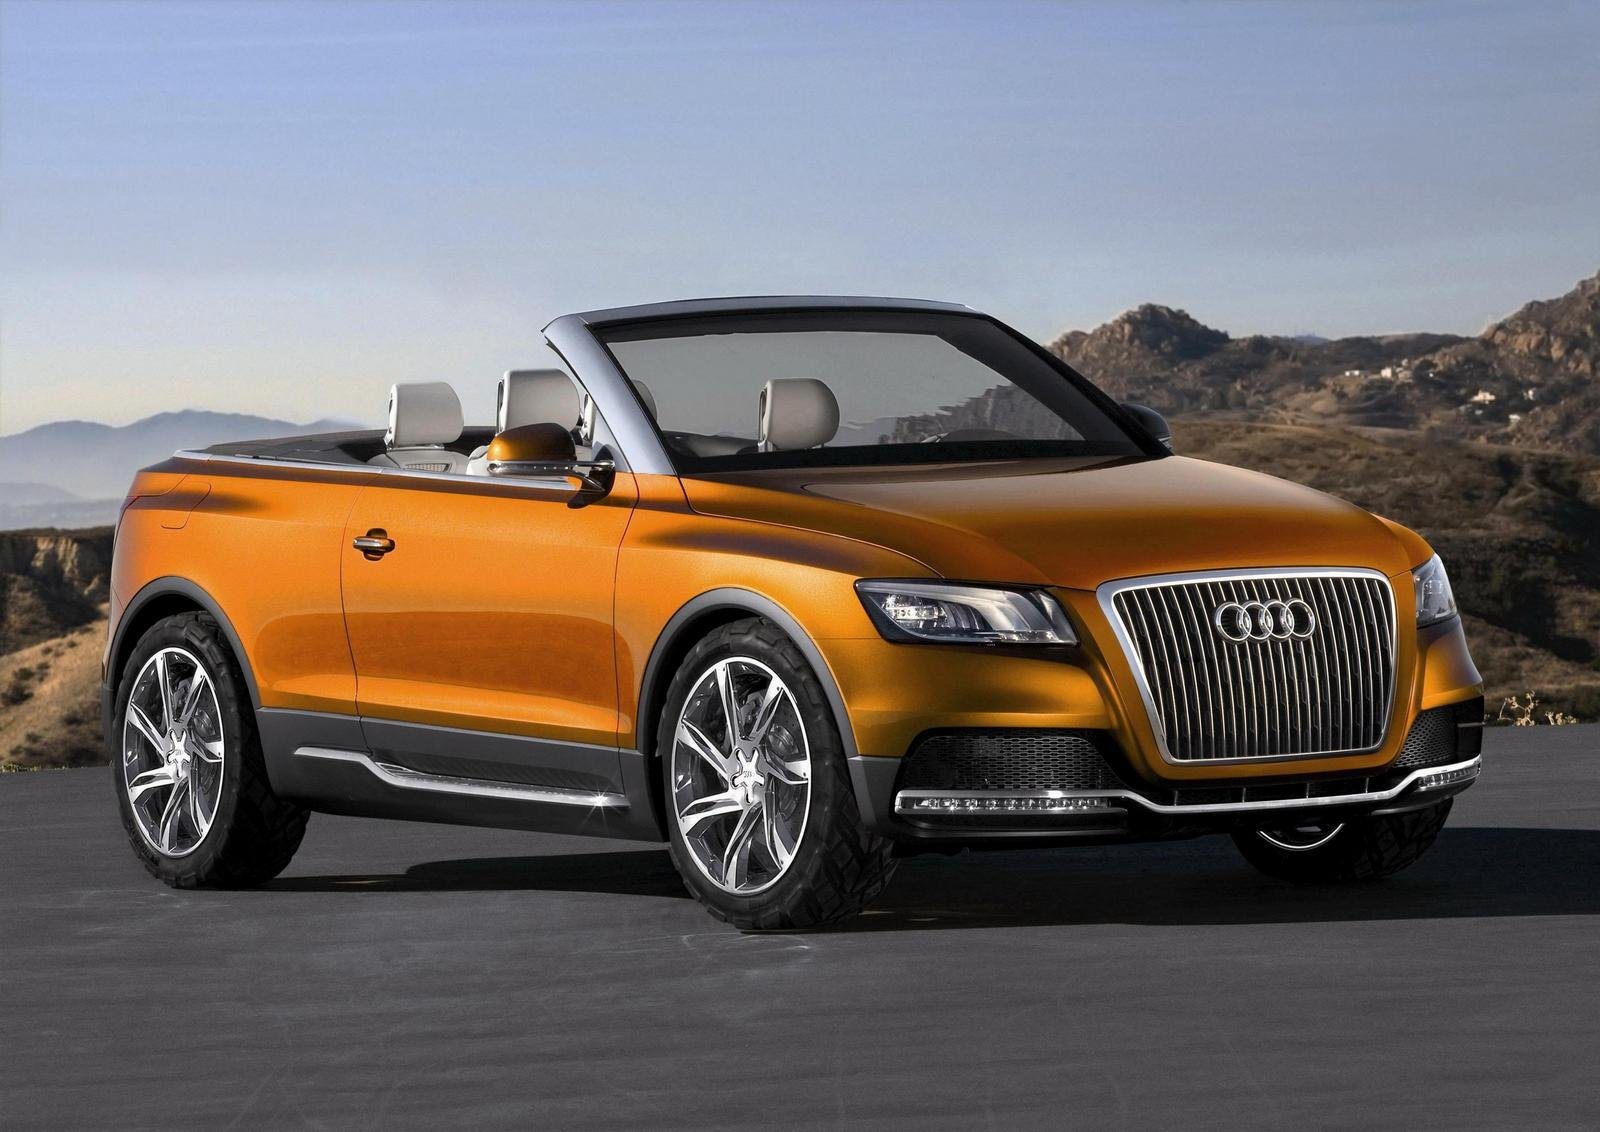 http://pictures.topspeed.com/IMG/crop/200711/audi-cross-cabriolet-11-1_1600x0w.jpg